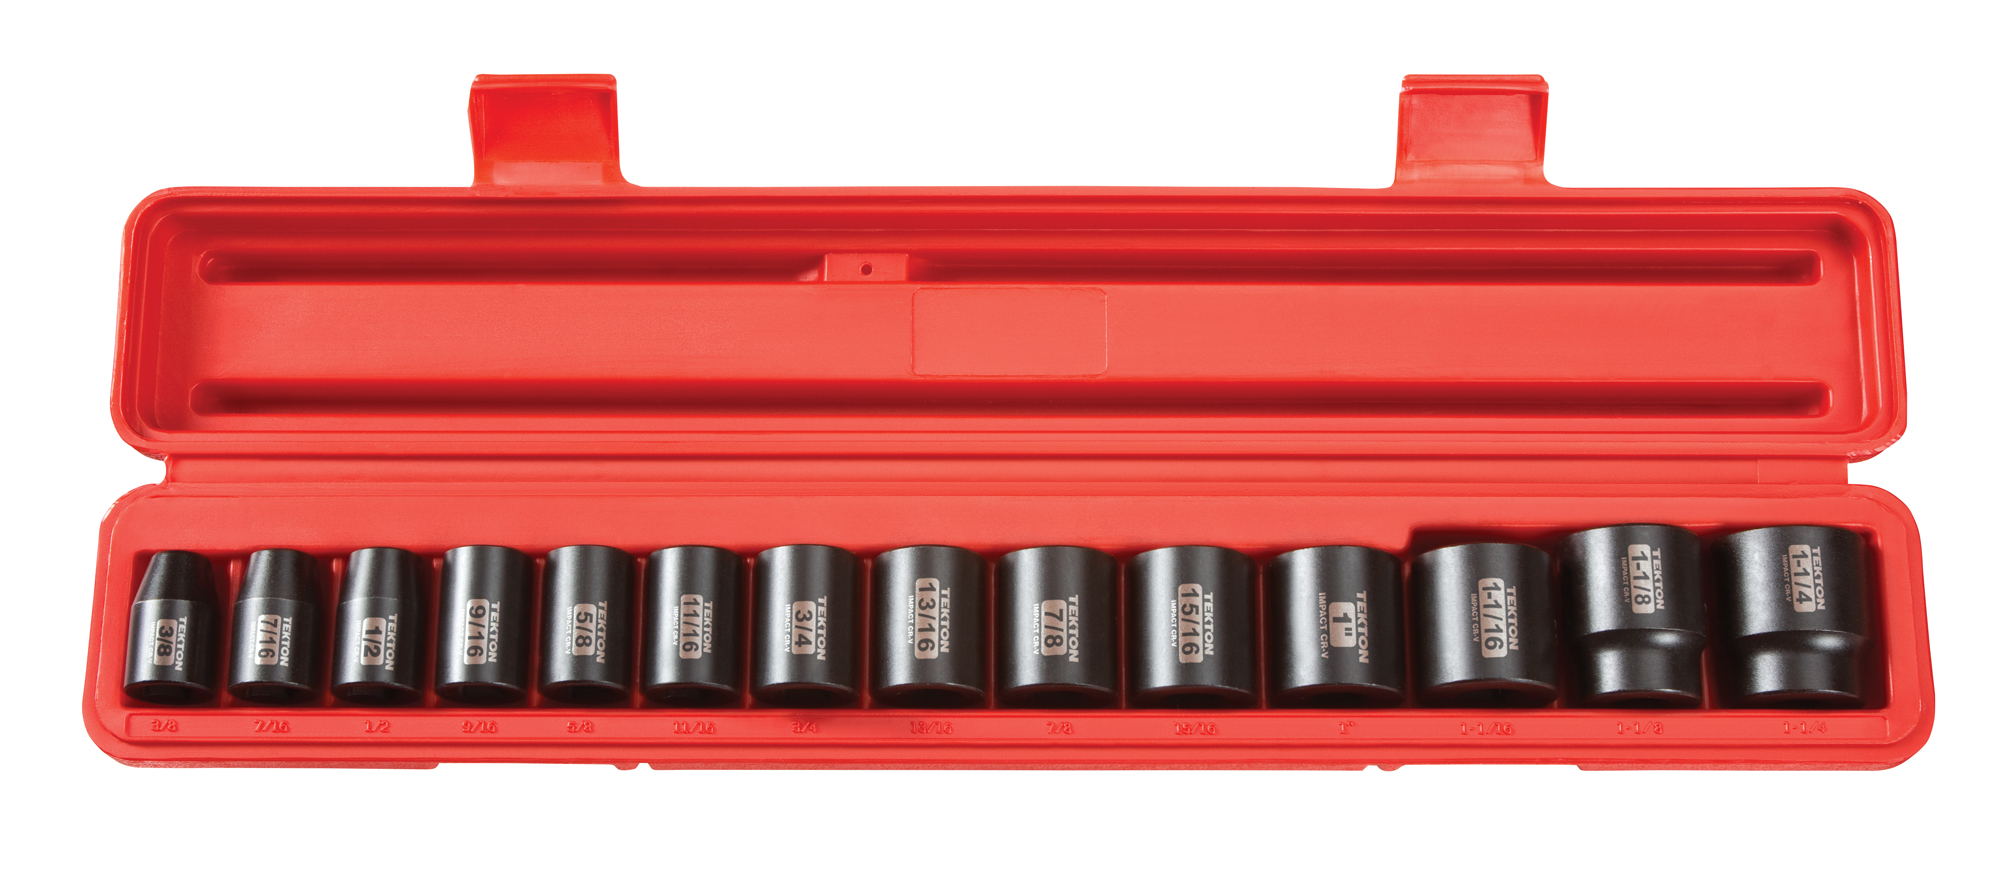 TEKTON 1 2-Inch Drive Shallow Impact Socket Set, Inch, Cr-V, 6-Point, 3 8-Inch 1-1 4-Inch,... by TEKTON